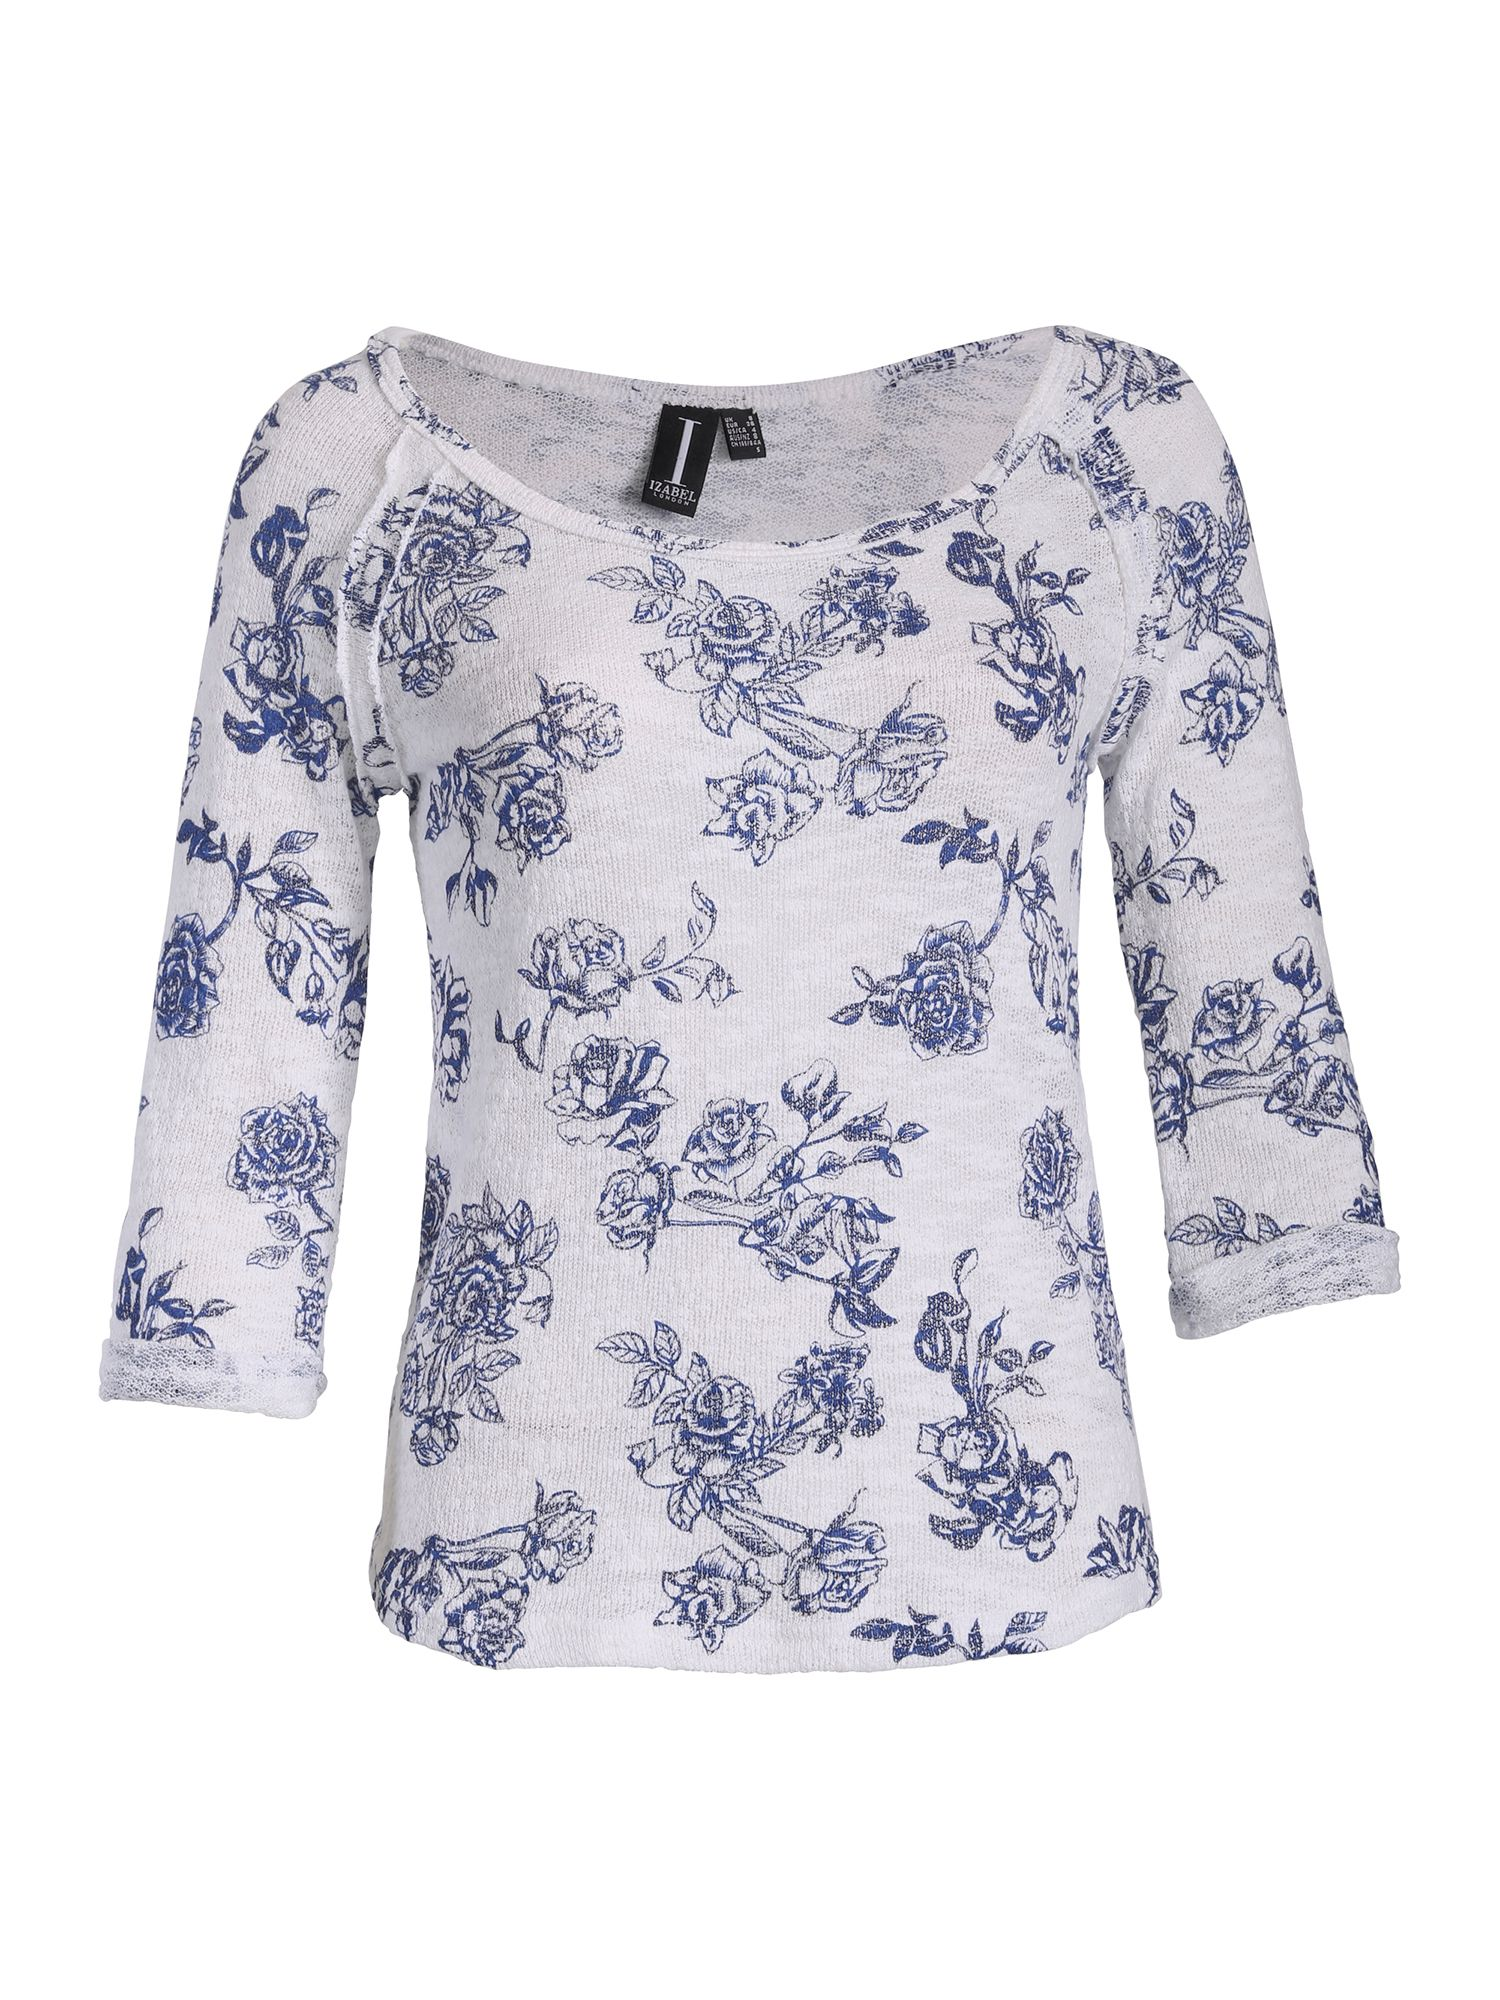 Textured rose print top